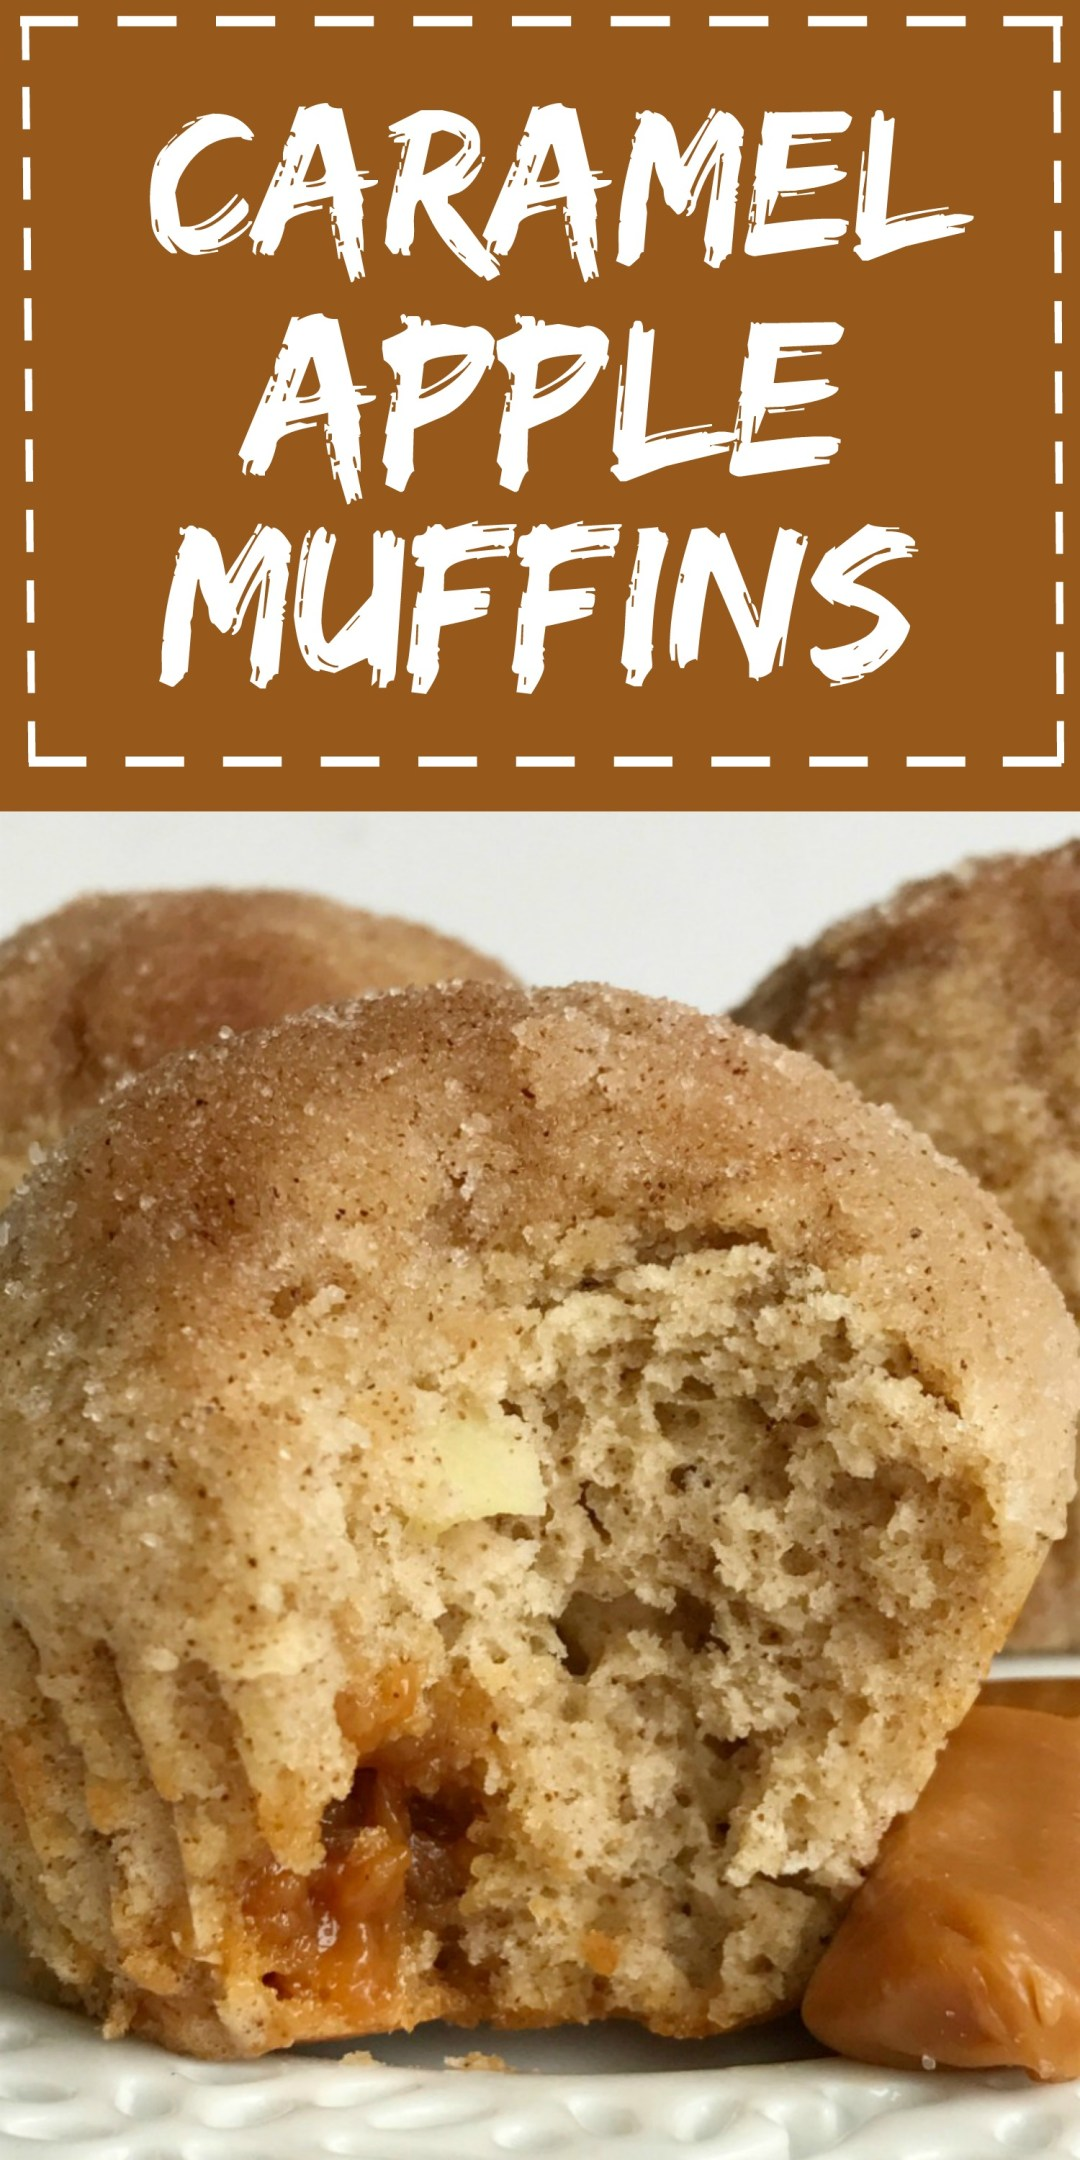 Caramel Apple Muffins | Caramel Apple | Muffin Recipe | Caramel apple muffins are bursting with warm cinnamon & sugar, chunks of apple, and caramel pieces. They bake up perfectly round like a bakery! These muffins are a fun twist to the classic caramel apple. #muffins #muffinrecipe #caramelapple #snack #easyrecipe #recipeoftheday